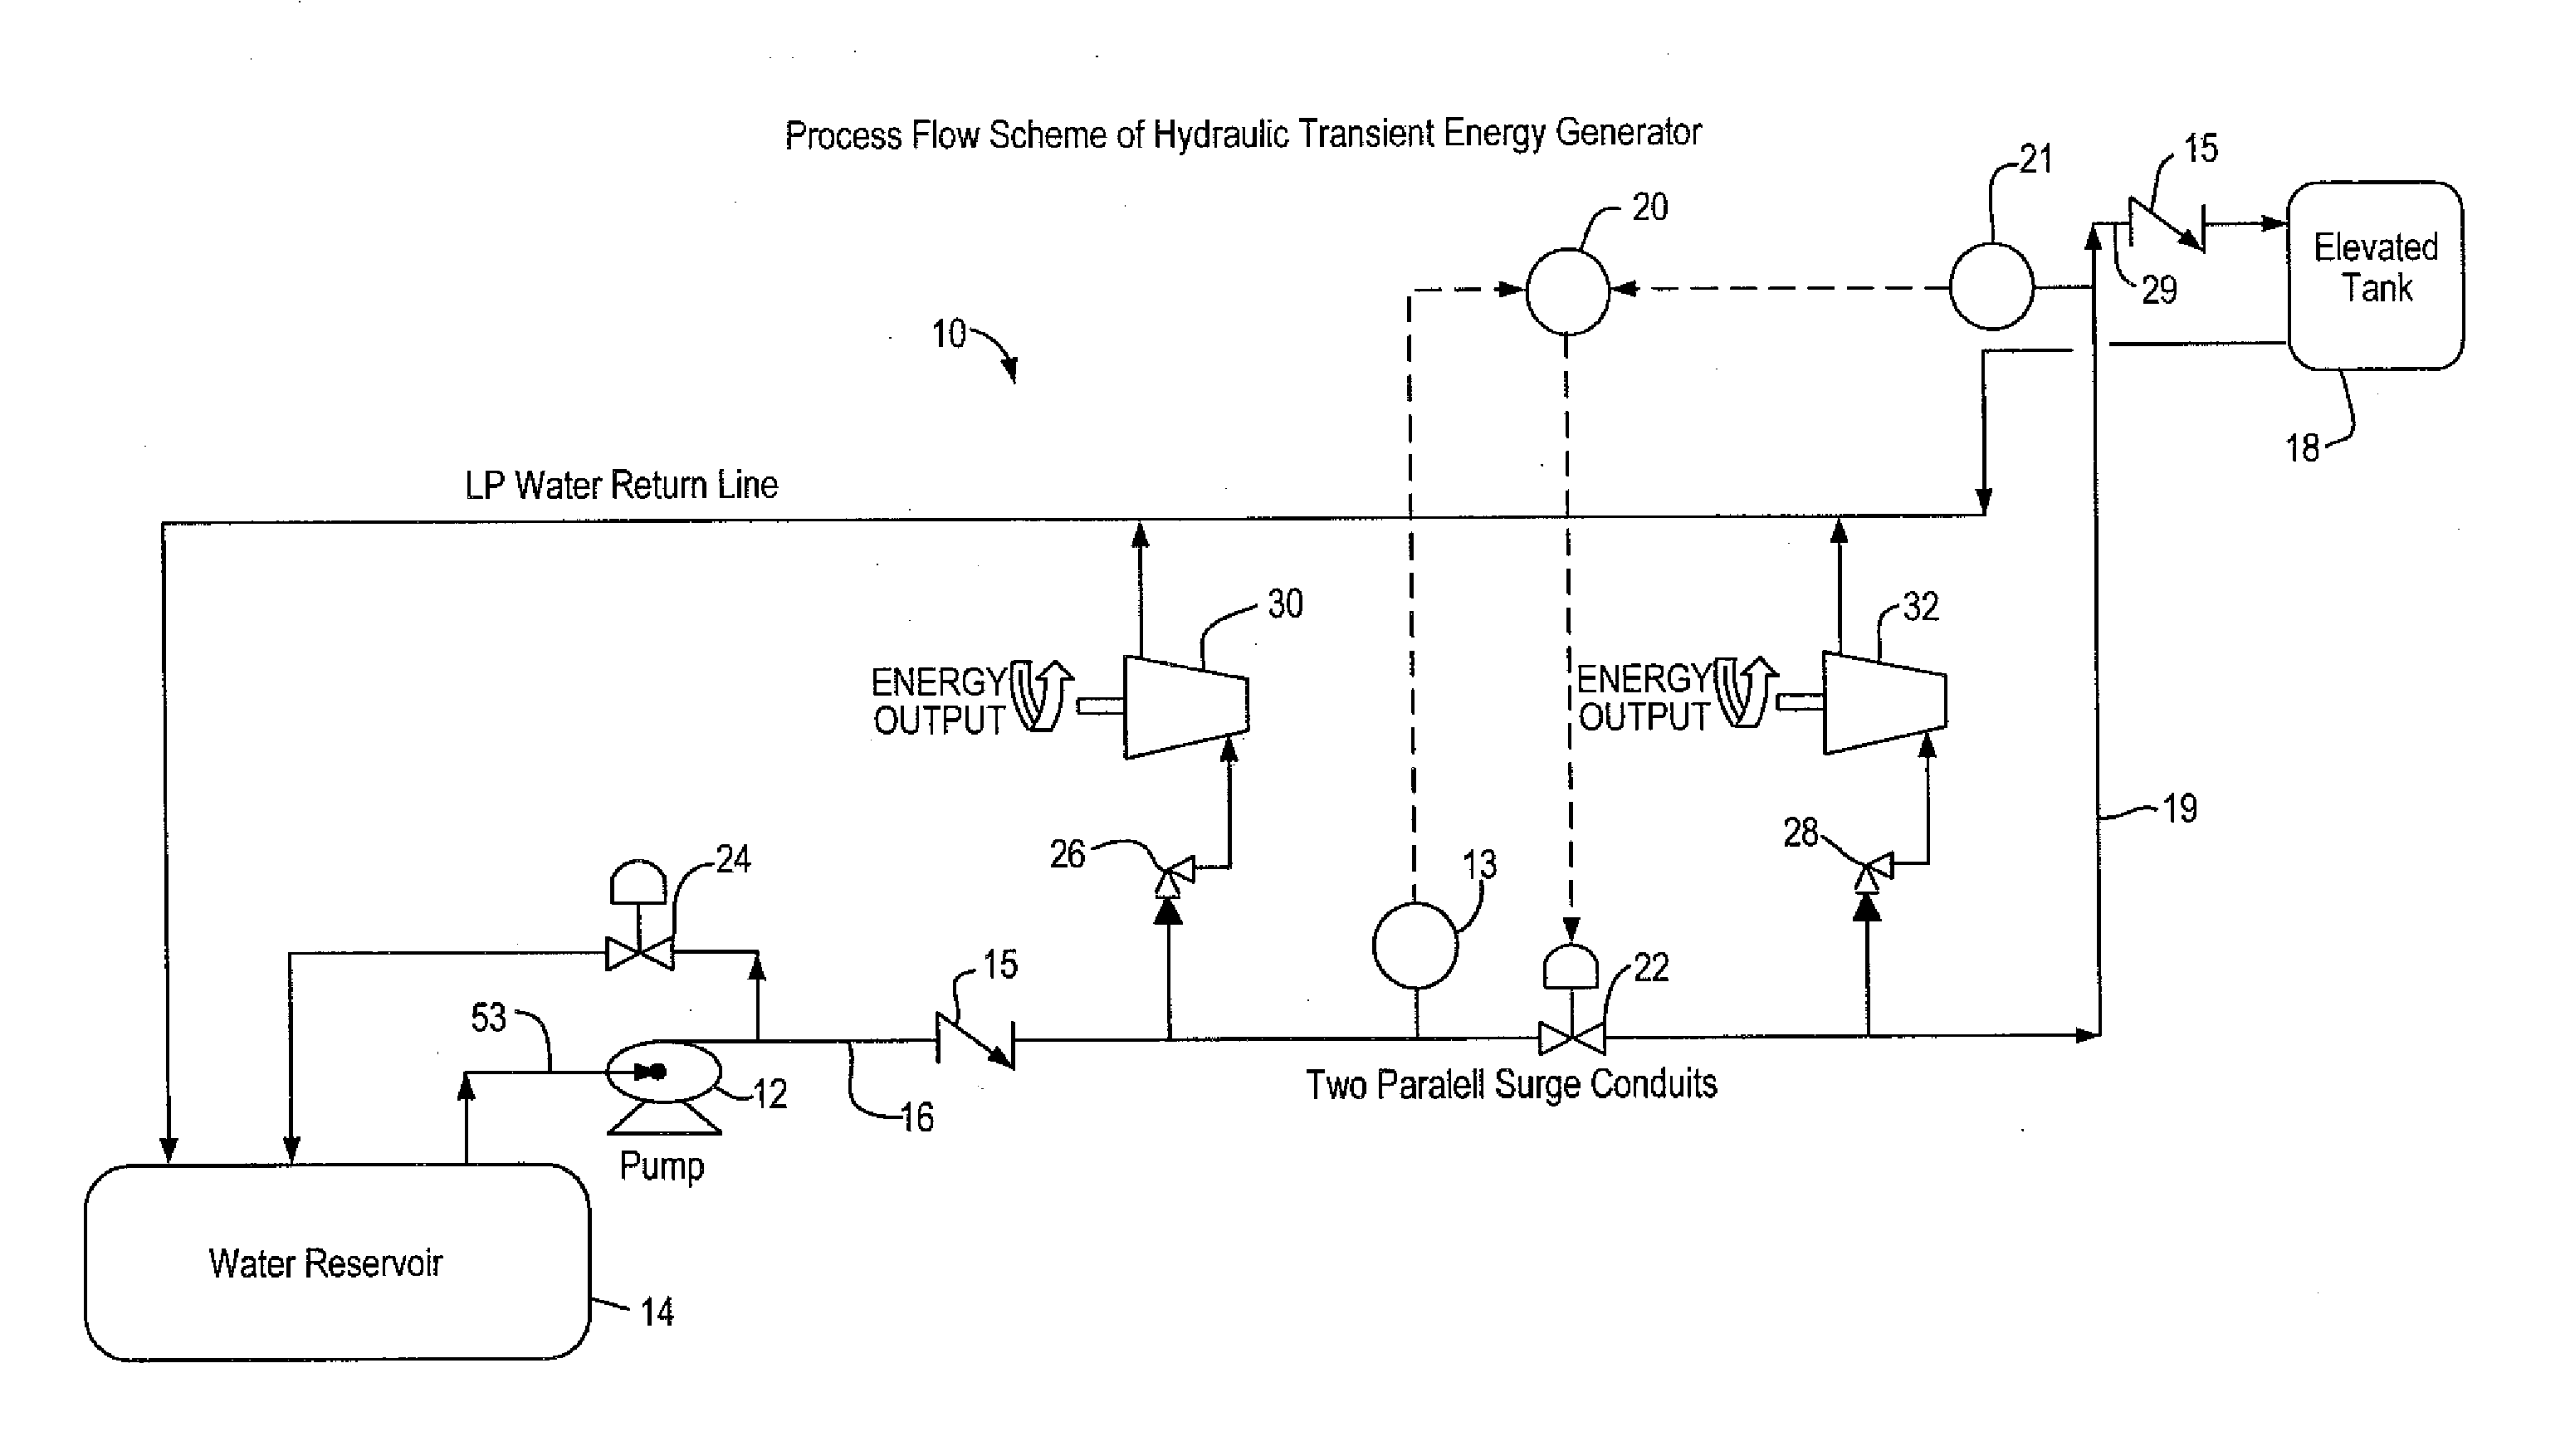 electrical meter drawing with Us20130038062 on Lemon Battery in addition US6819007 also Spectronic 20 further Intelligent Electrical One Line Diagram further Symbols For Valves Pumps And Electrica.